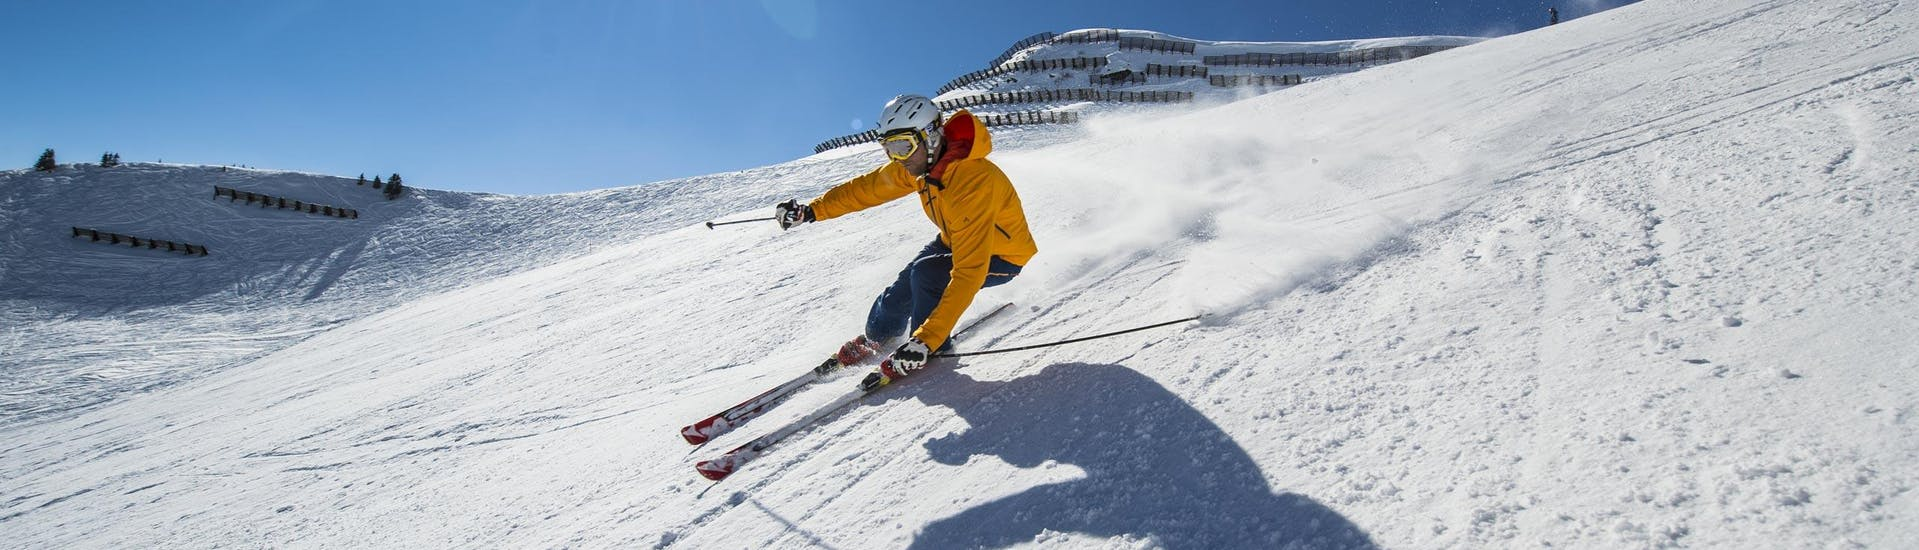 Private Ski Lessons for Adults of All Levels: A skier is skiing down a sunny ski slope while participating in an activity offered by Alpin Skischule Oberstdorf.